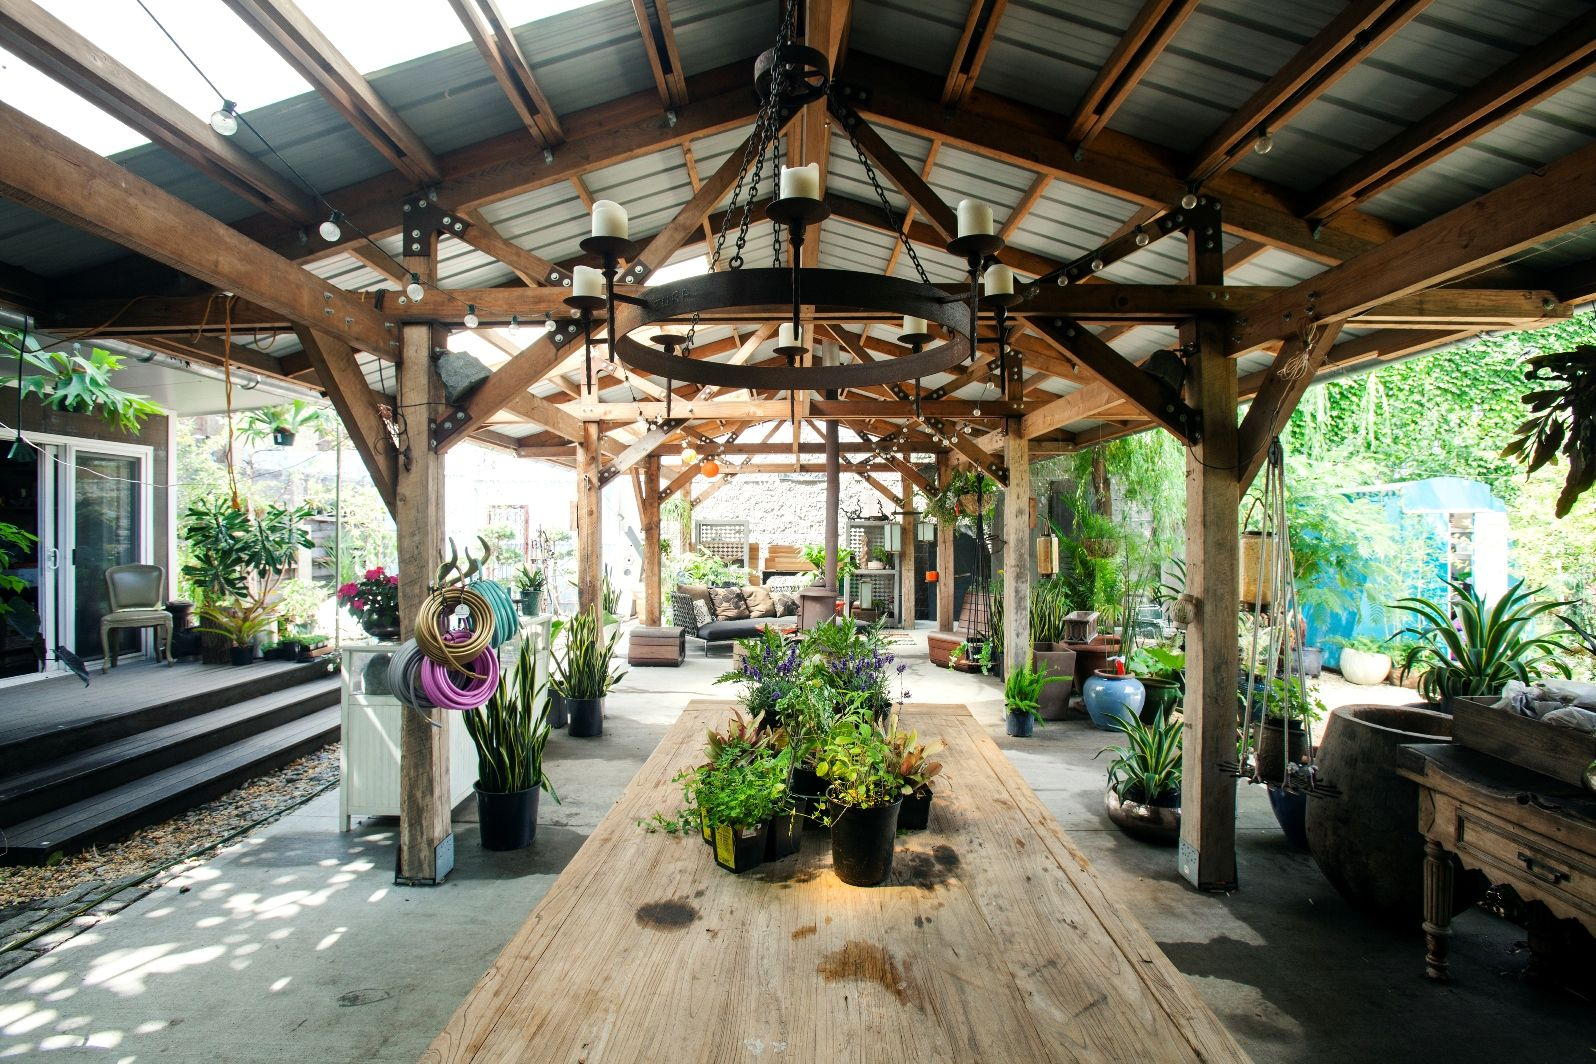 An urban greenhouse makes an unusual event venue. Photo courtesy of Splacer